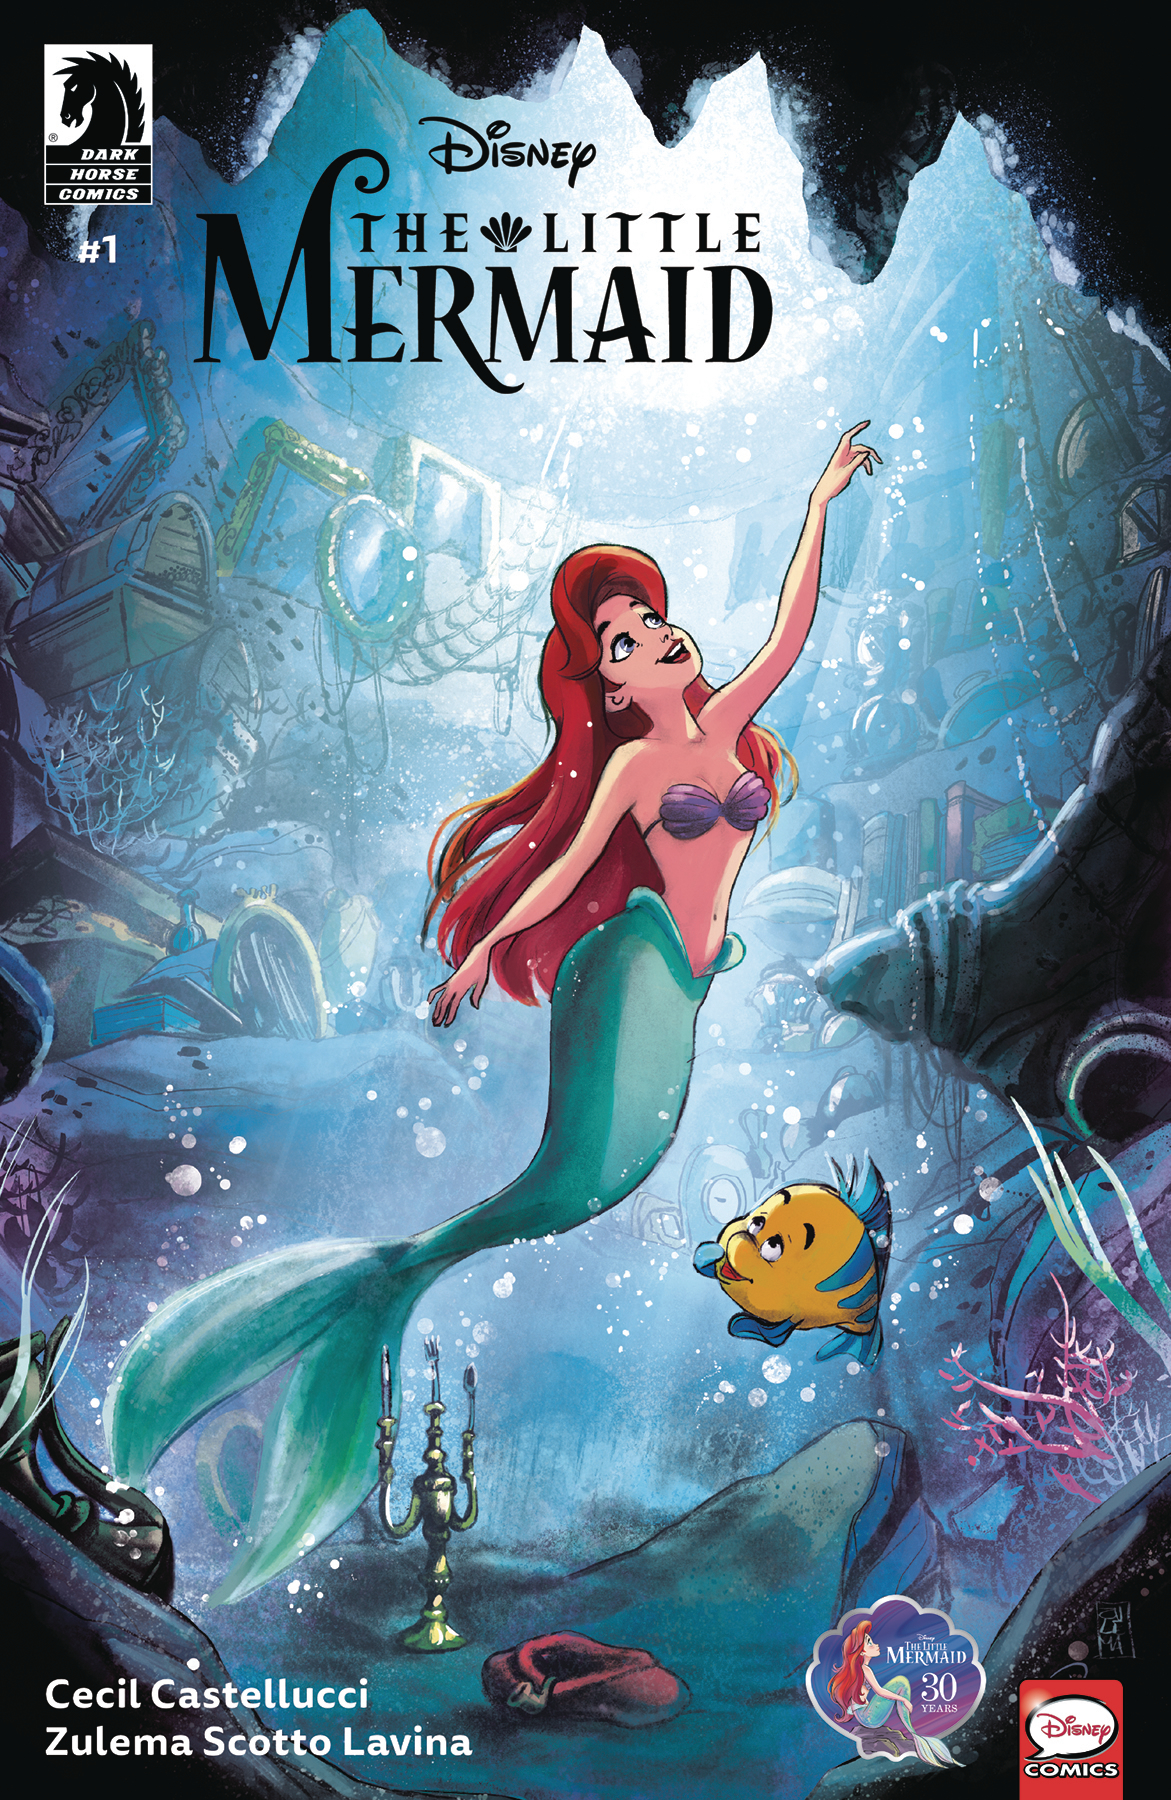 DISNEY THE LITTLE MERMAID #1 (OF 3)